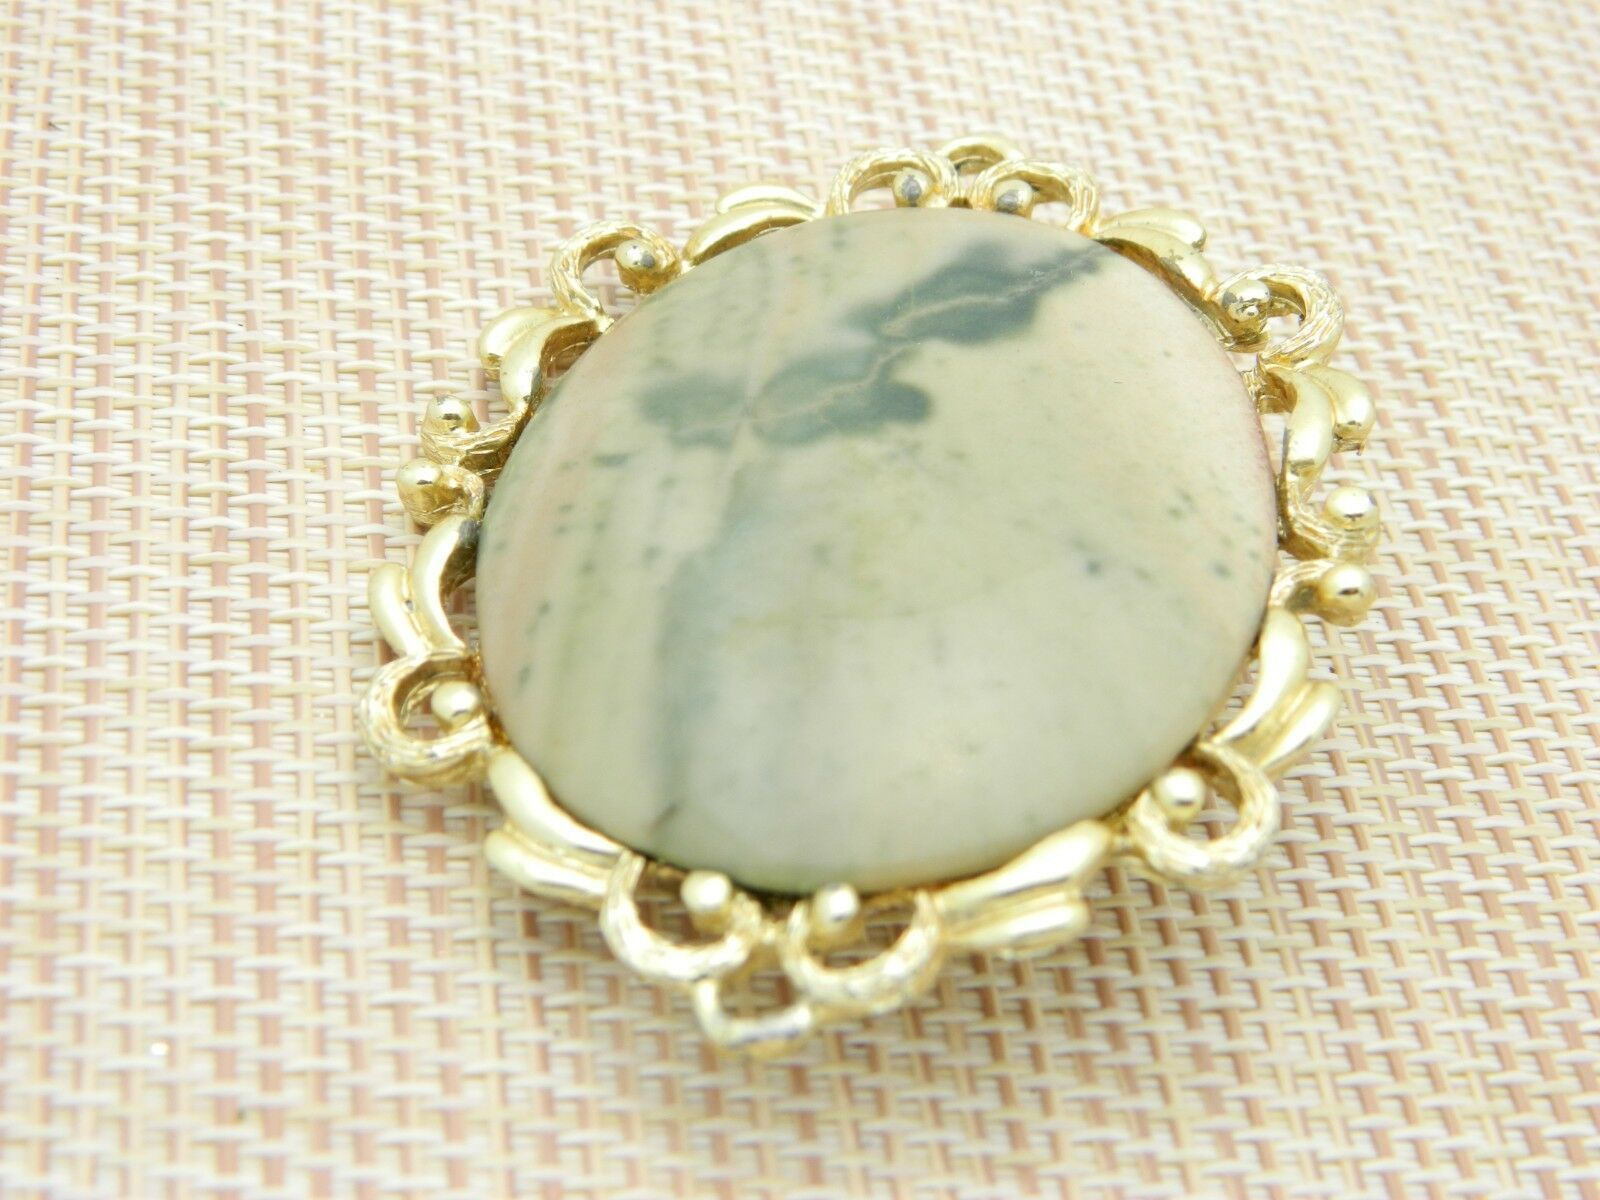 Peach Cream Green Agate Stone Gold Tone Pin Brooch Vintage Large image 2